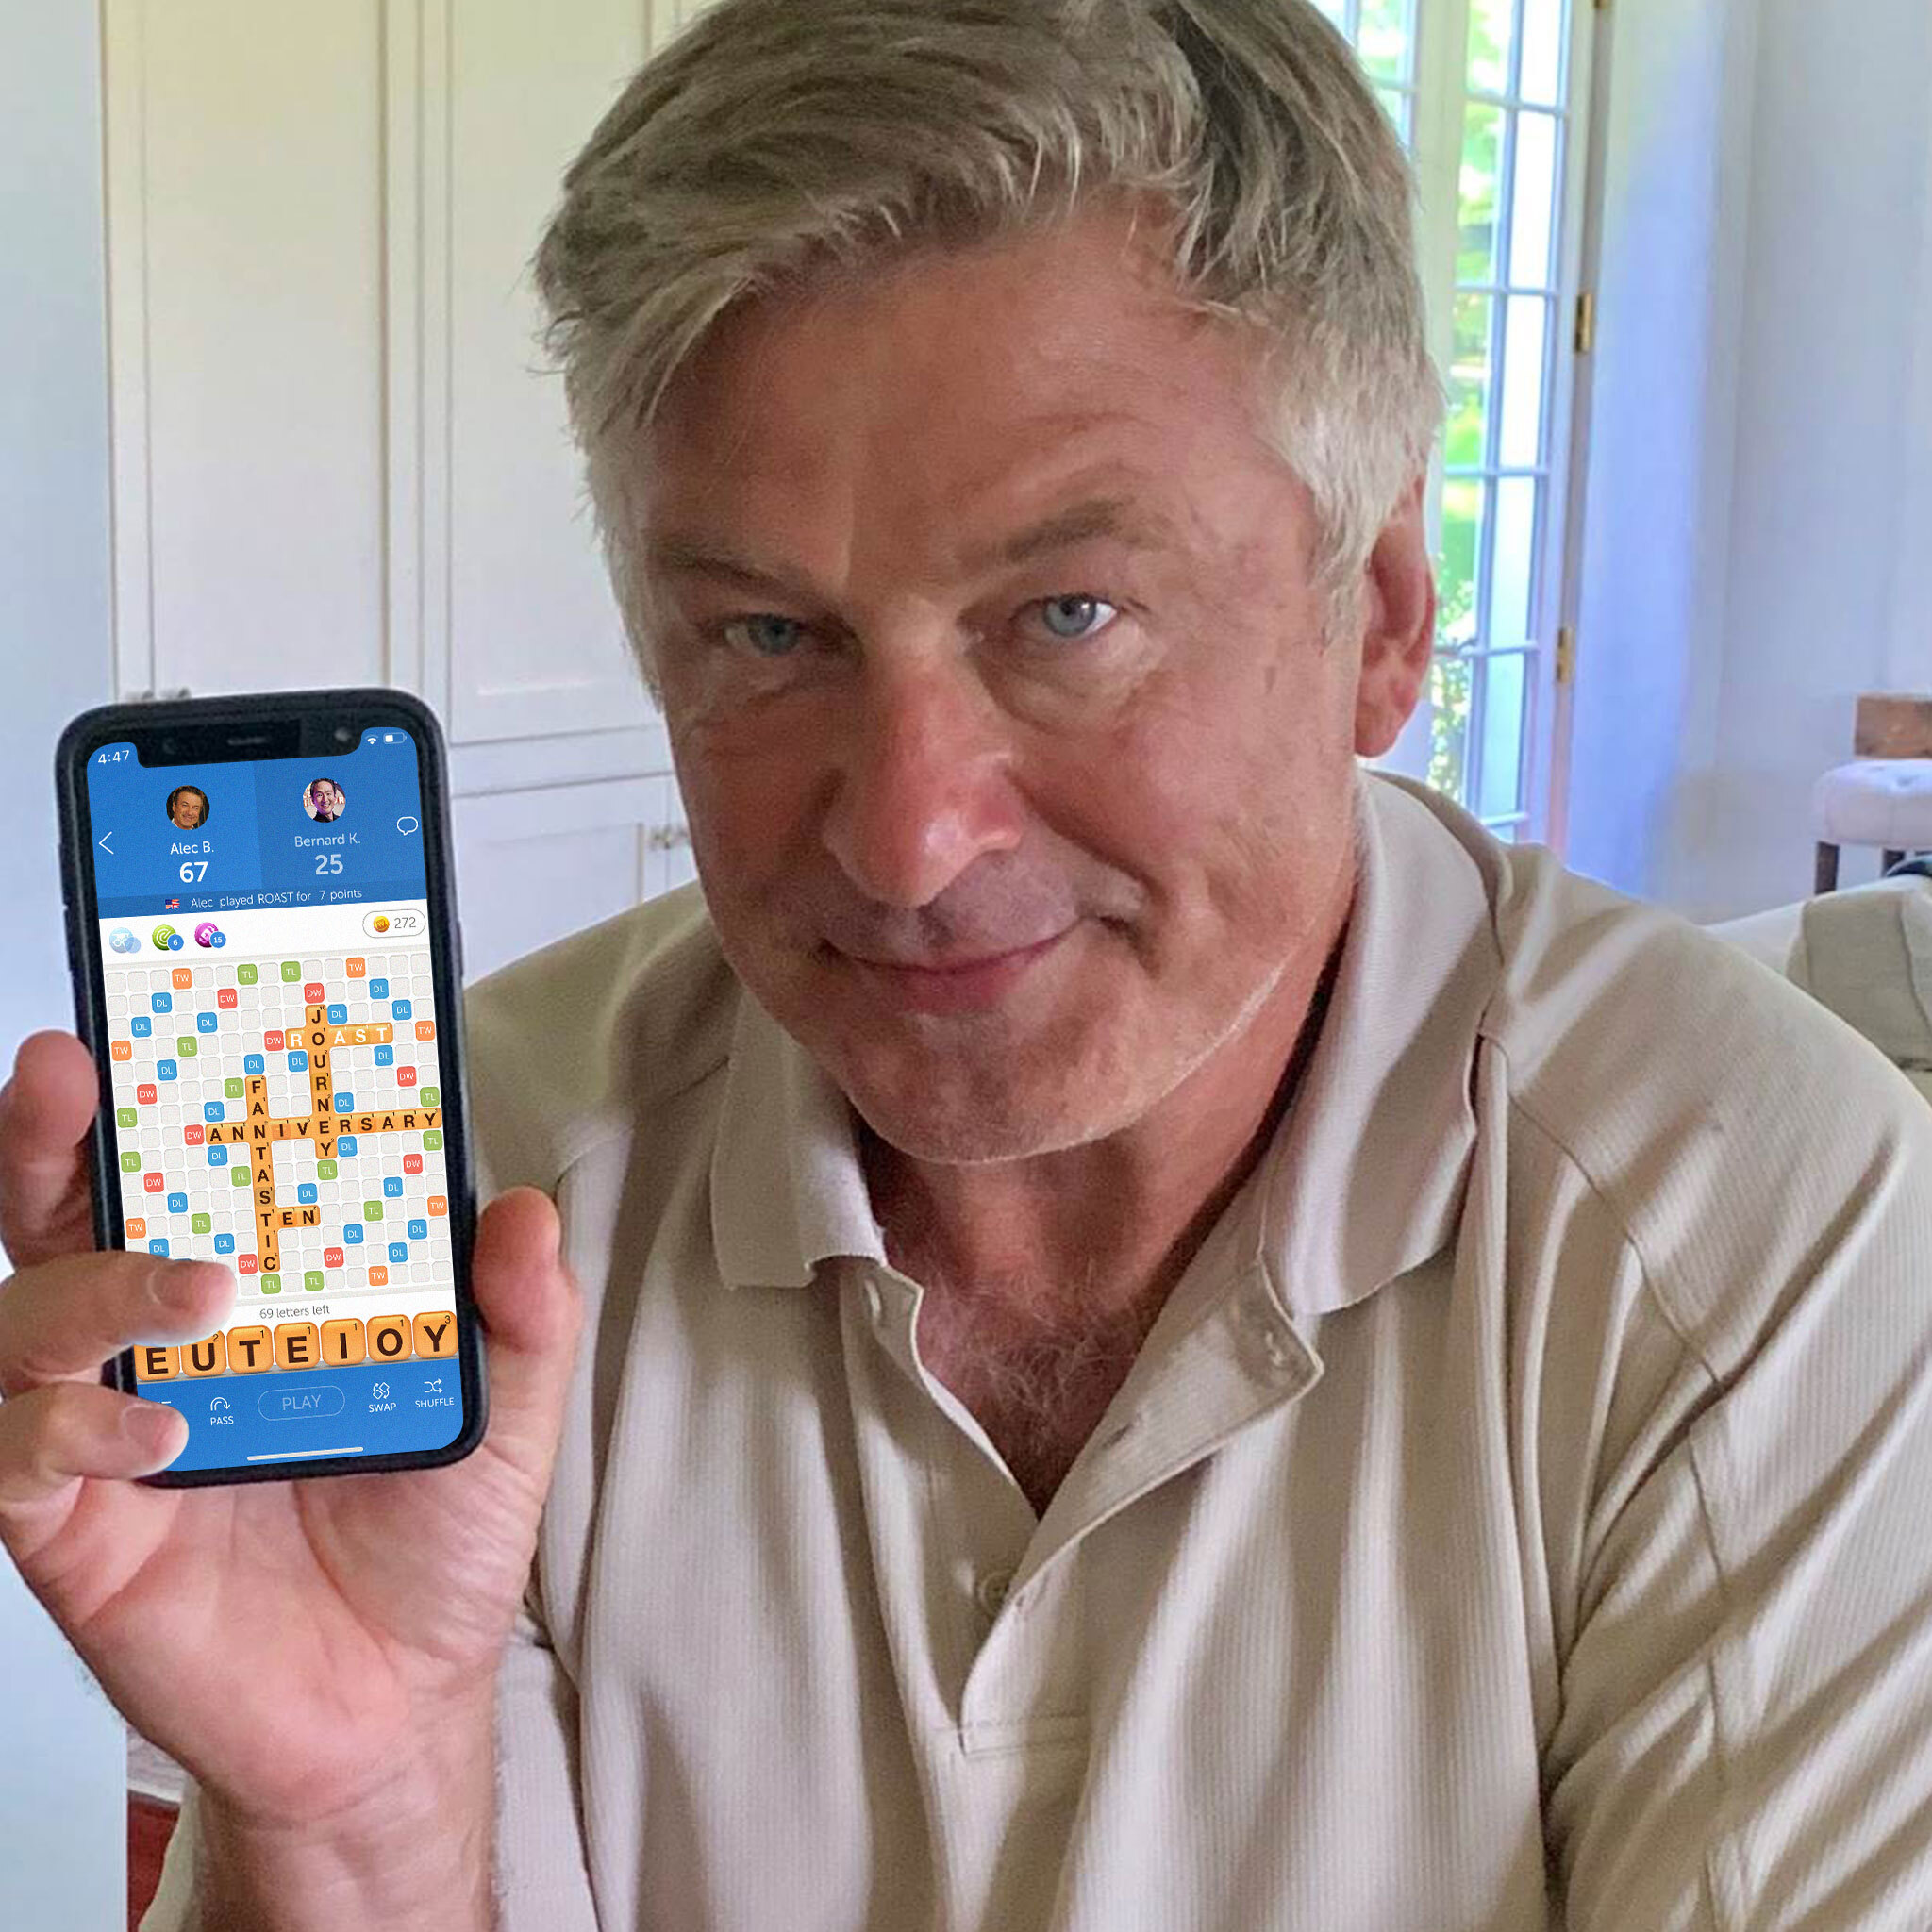 An aging man — Alec Baldwin— with gray hair and a tan polo shirt has a mostly neutral expression on his face. He is slightly smirking and holding up an iPhone with a game of Words With Friends on the screen.